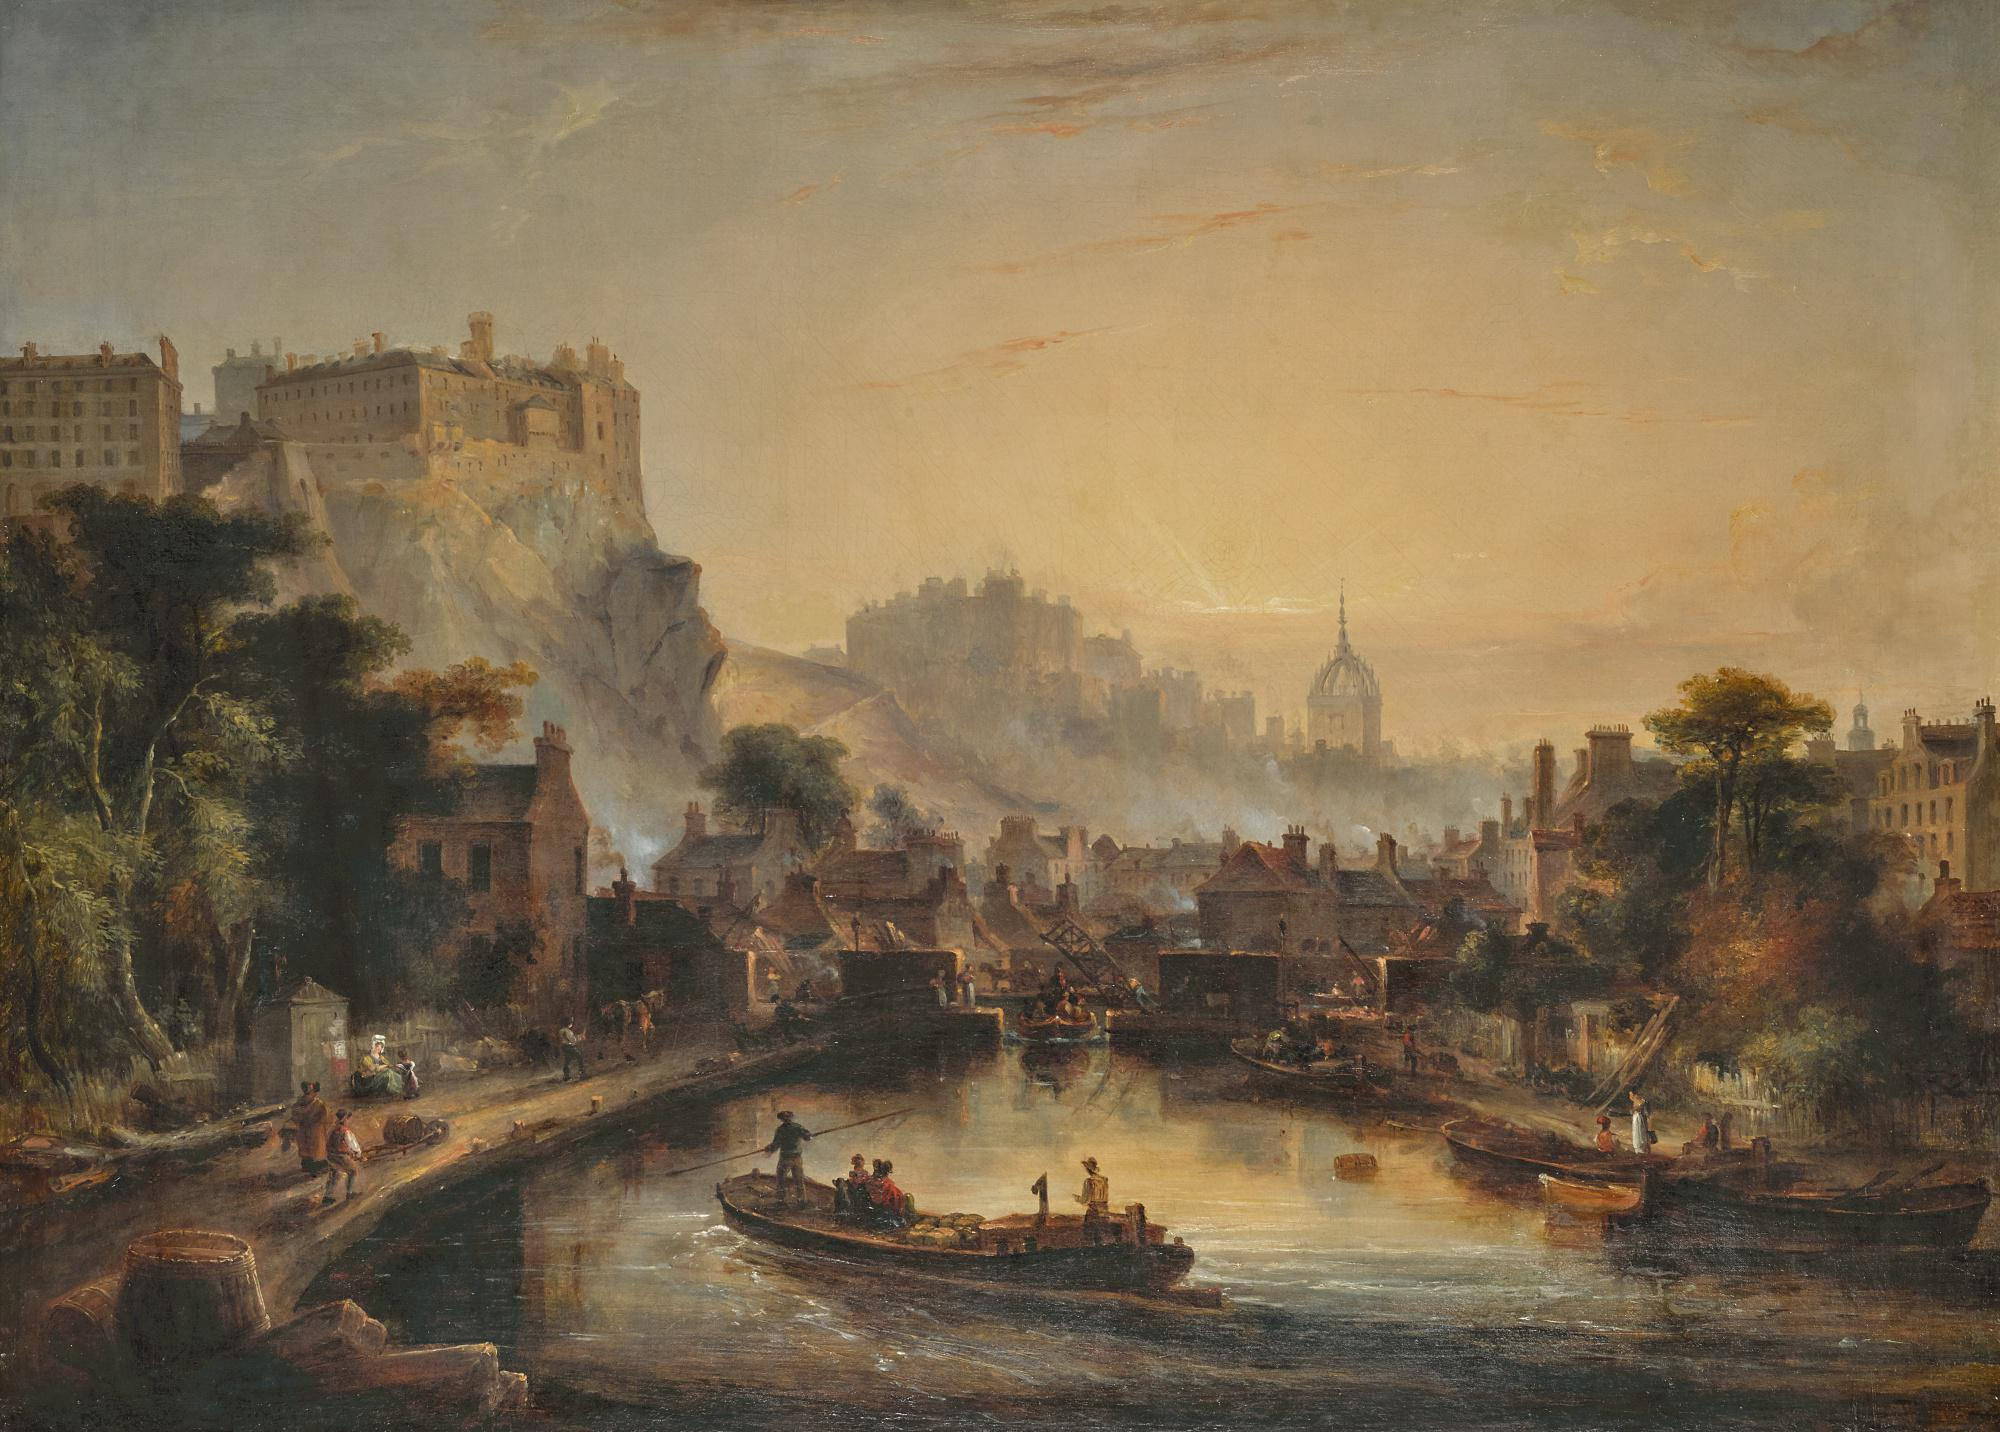 JAMES FRANCIS WILLIAMS, R.S.A. | VIEW OF EDINBURGH FROM THE UNION CANAL